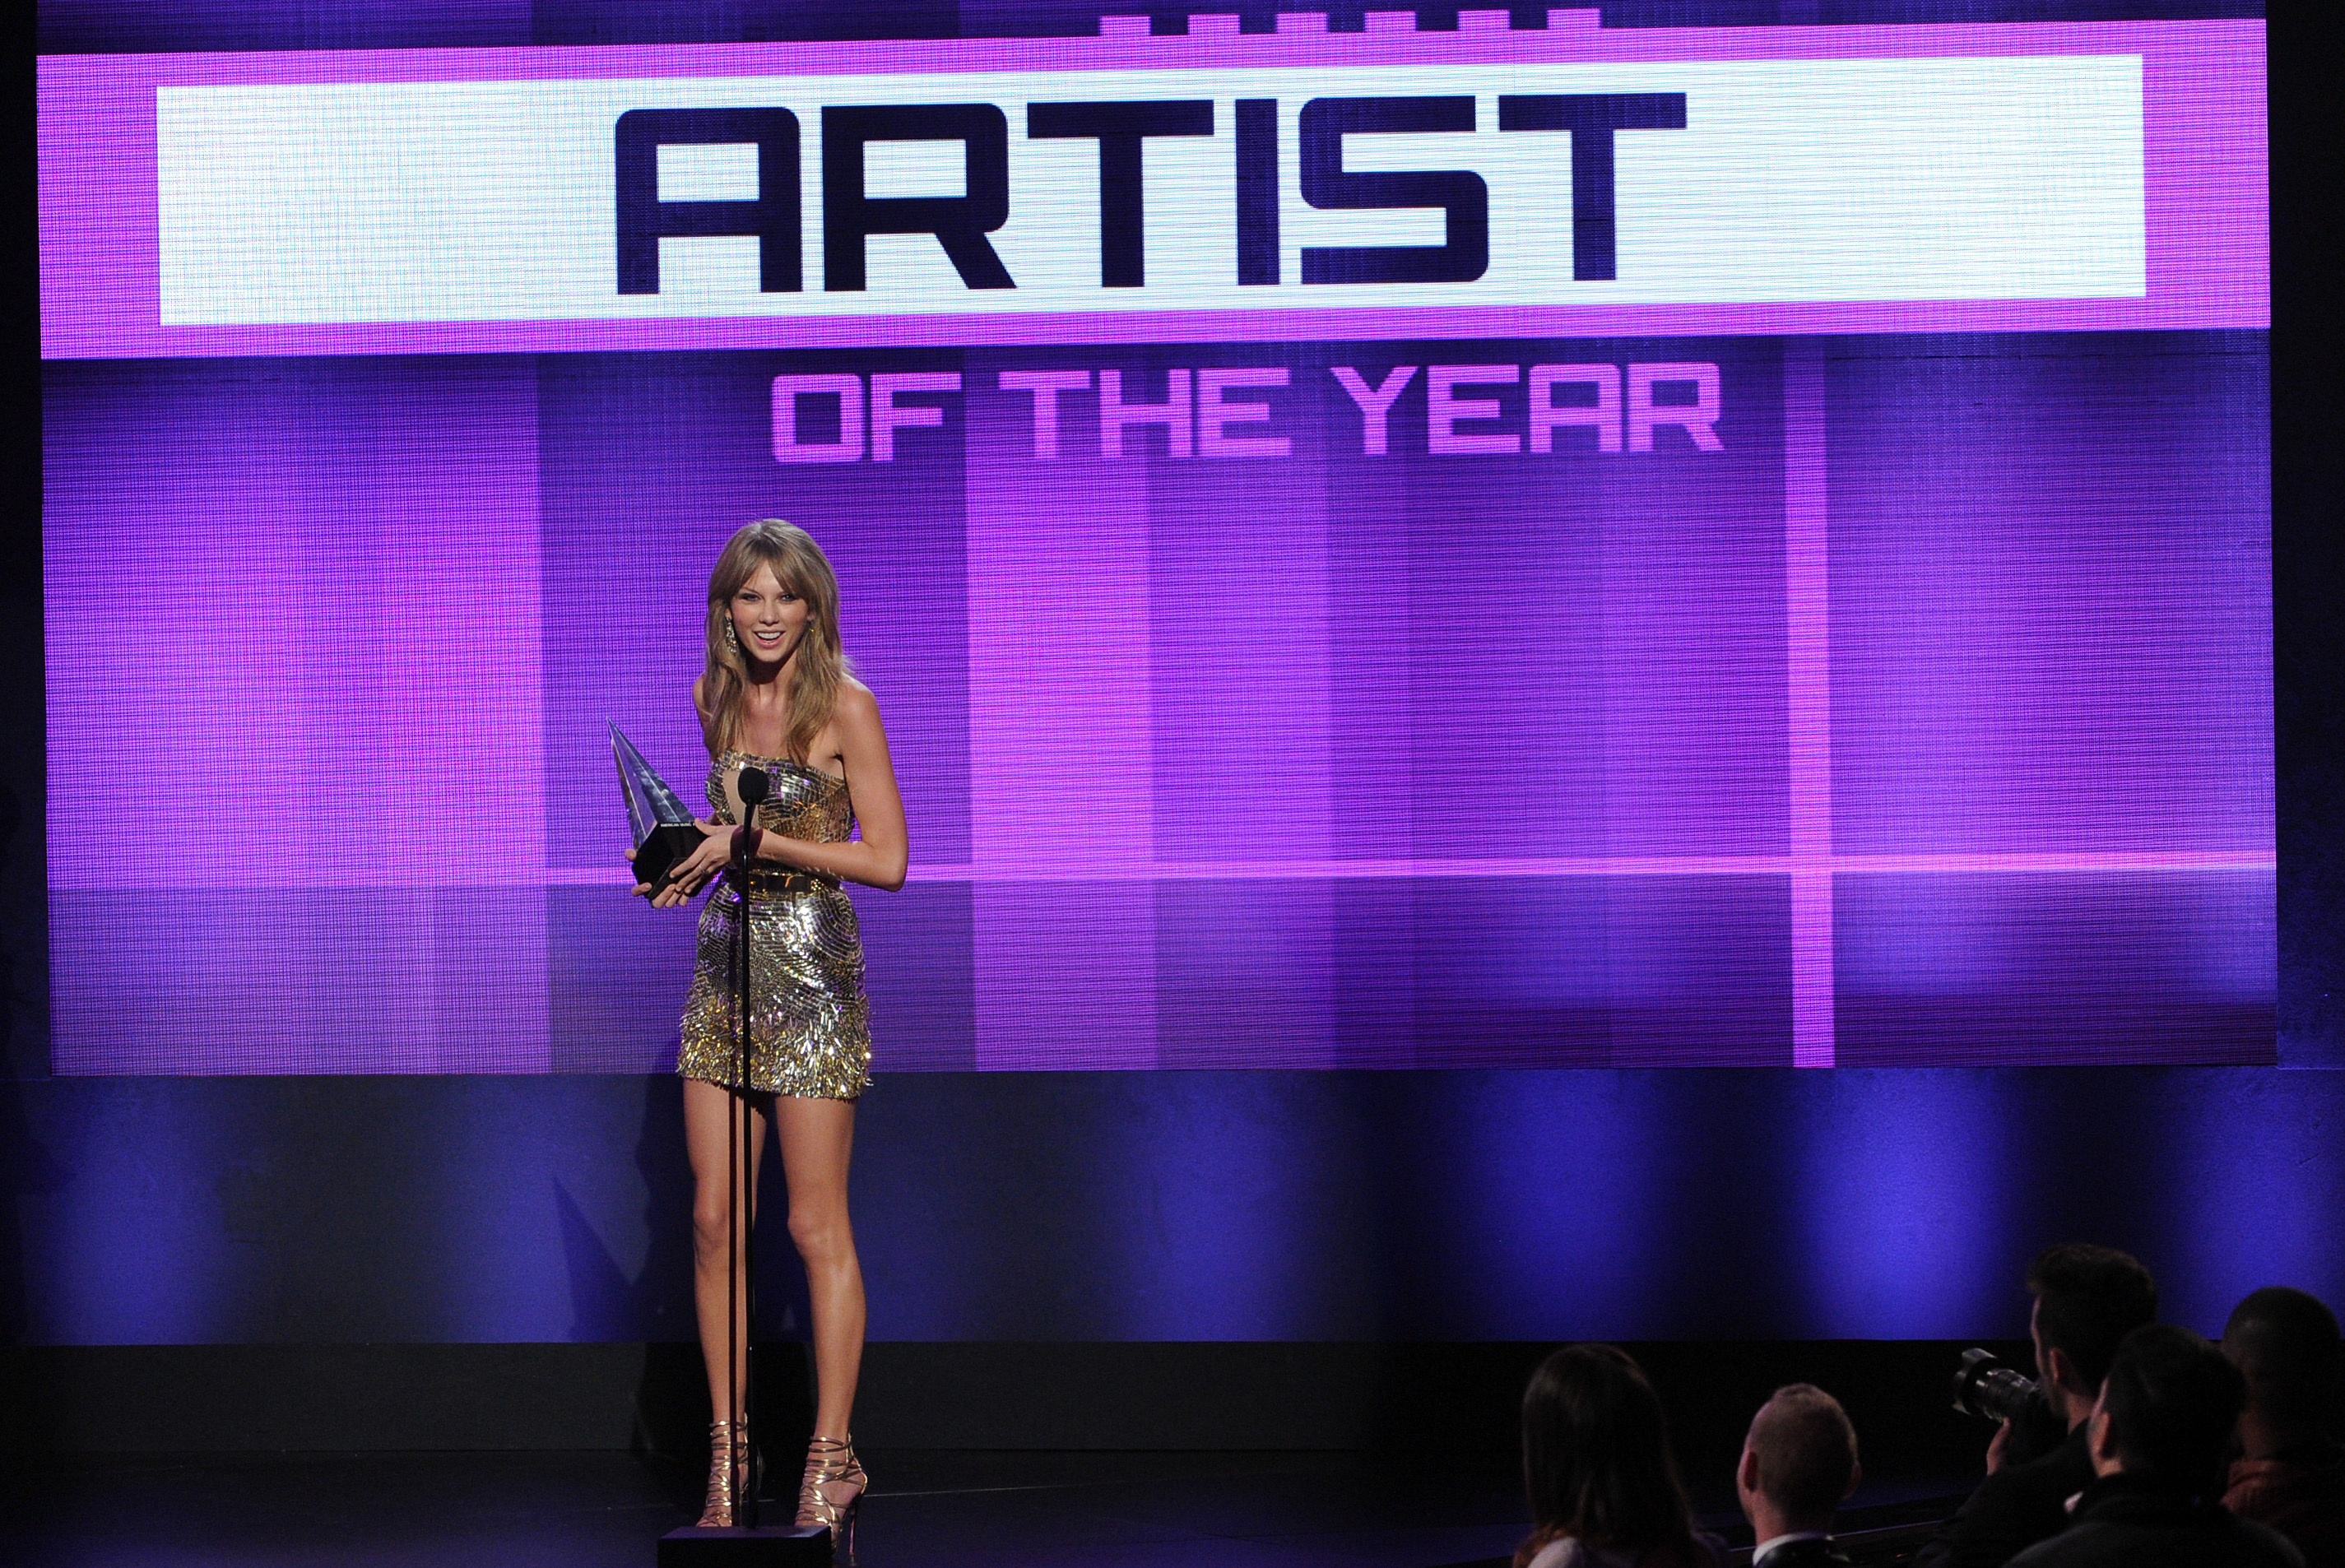 http://taylorpictures.net/albums/app/2013/americanmusicawards/066.jpg